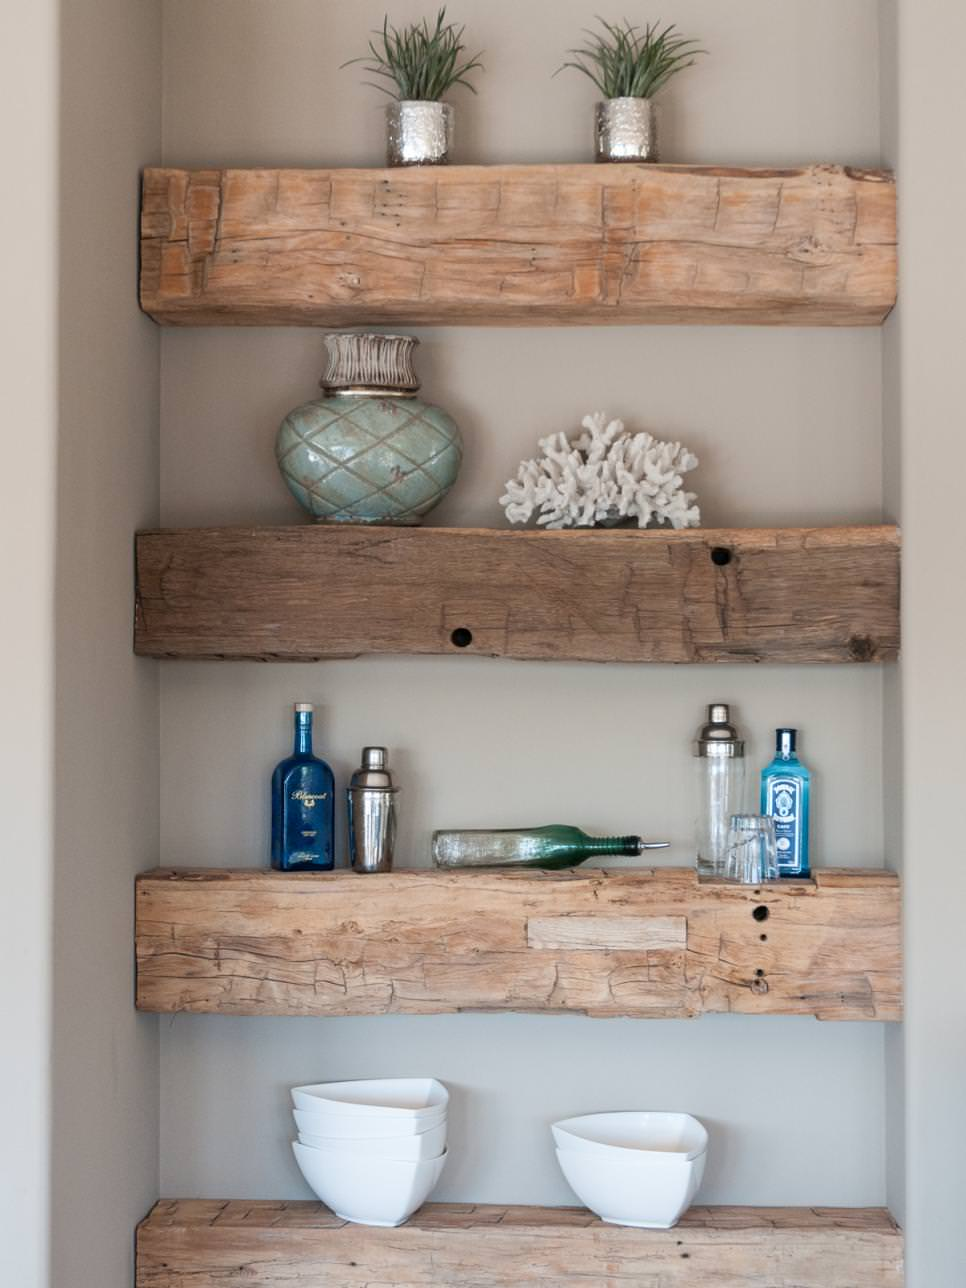 Rough Wooden Decor Shelves